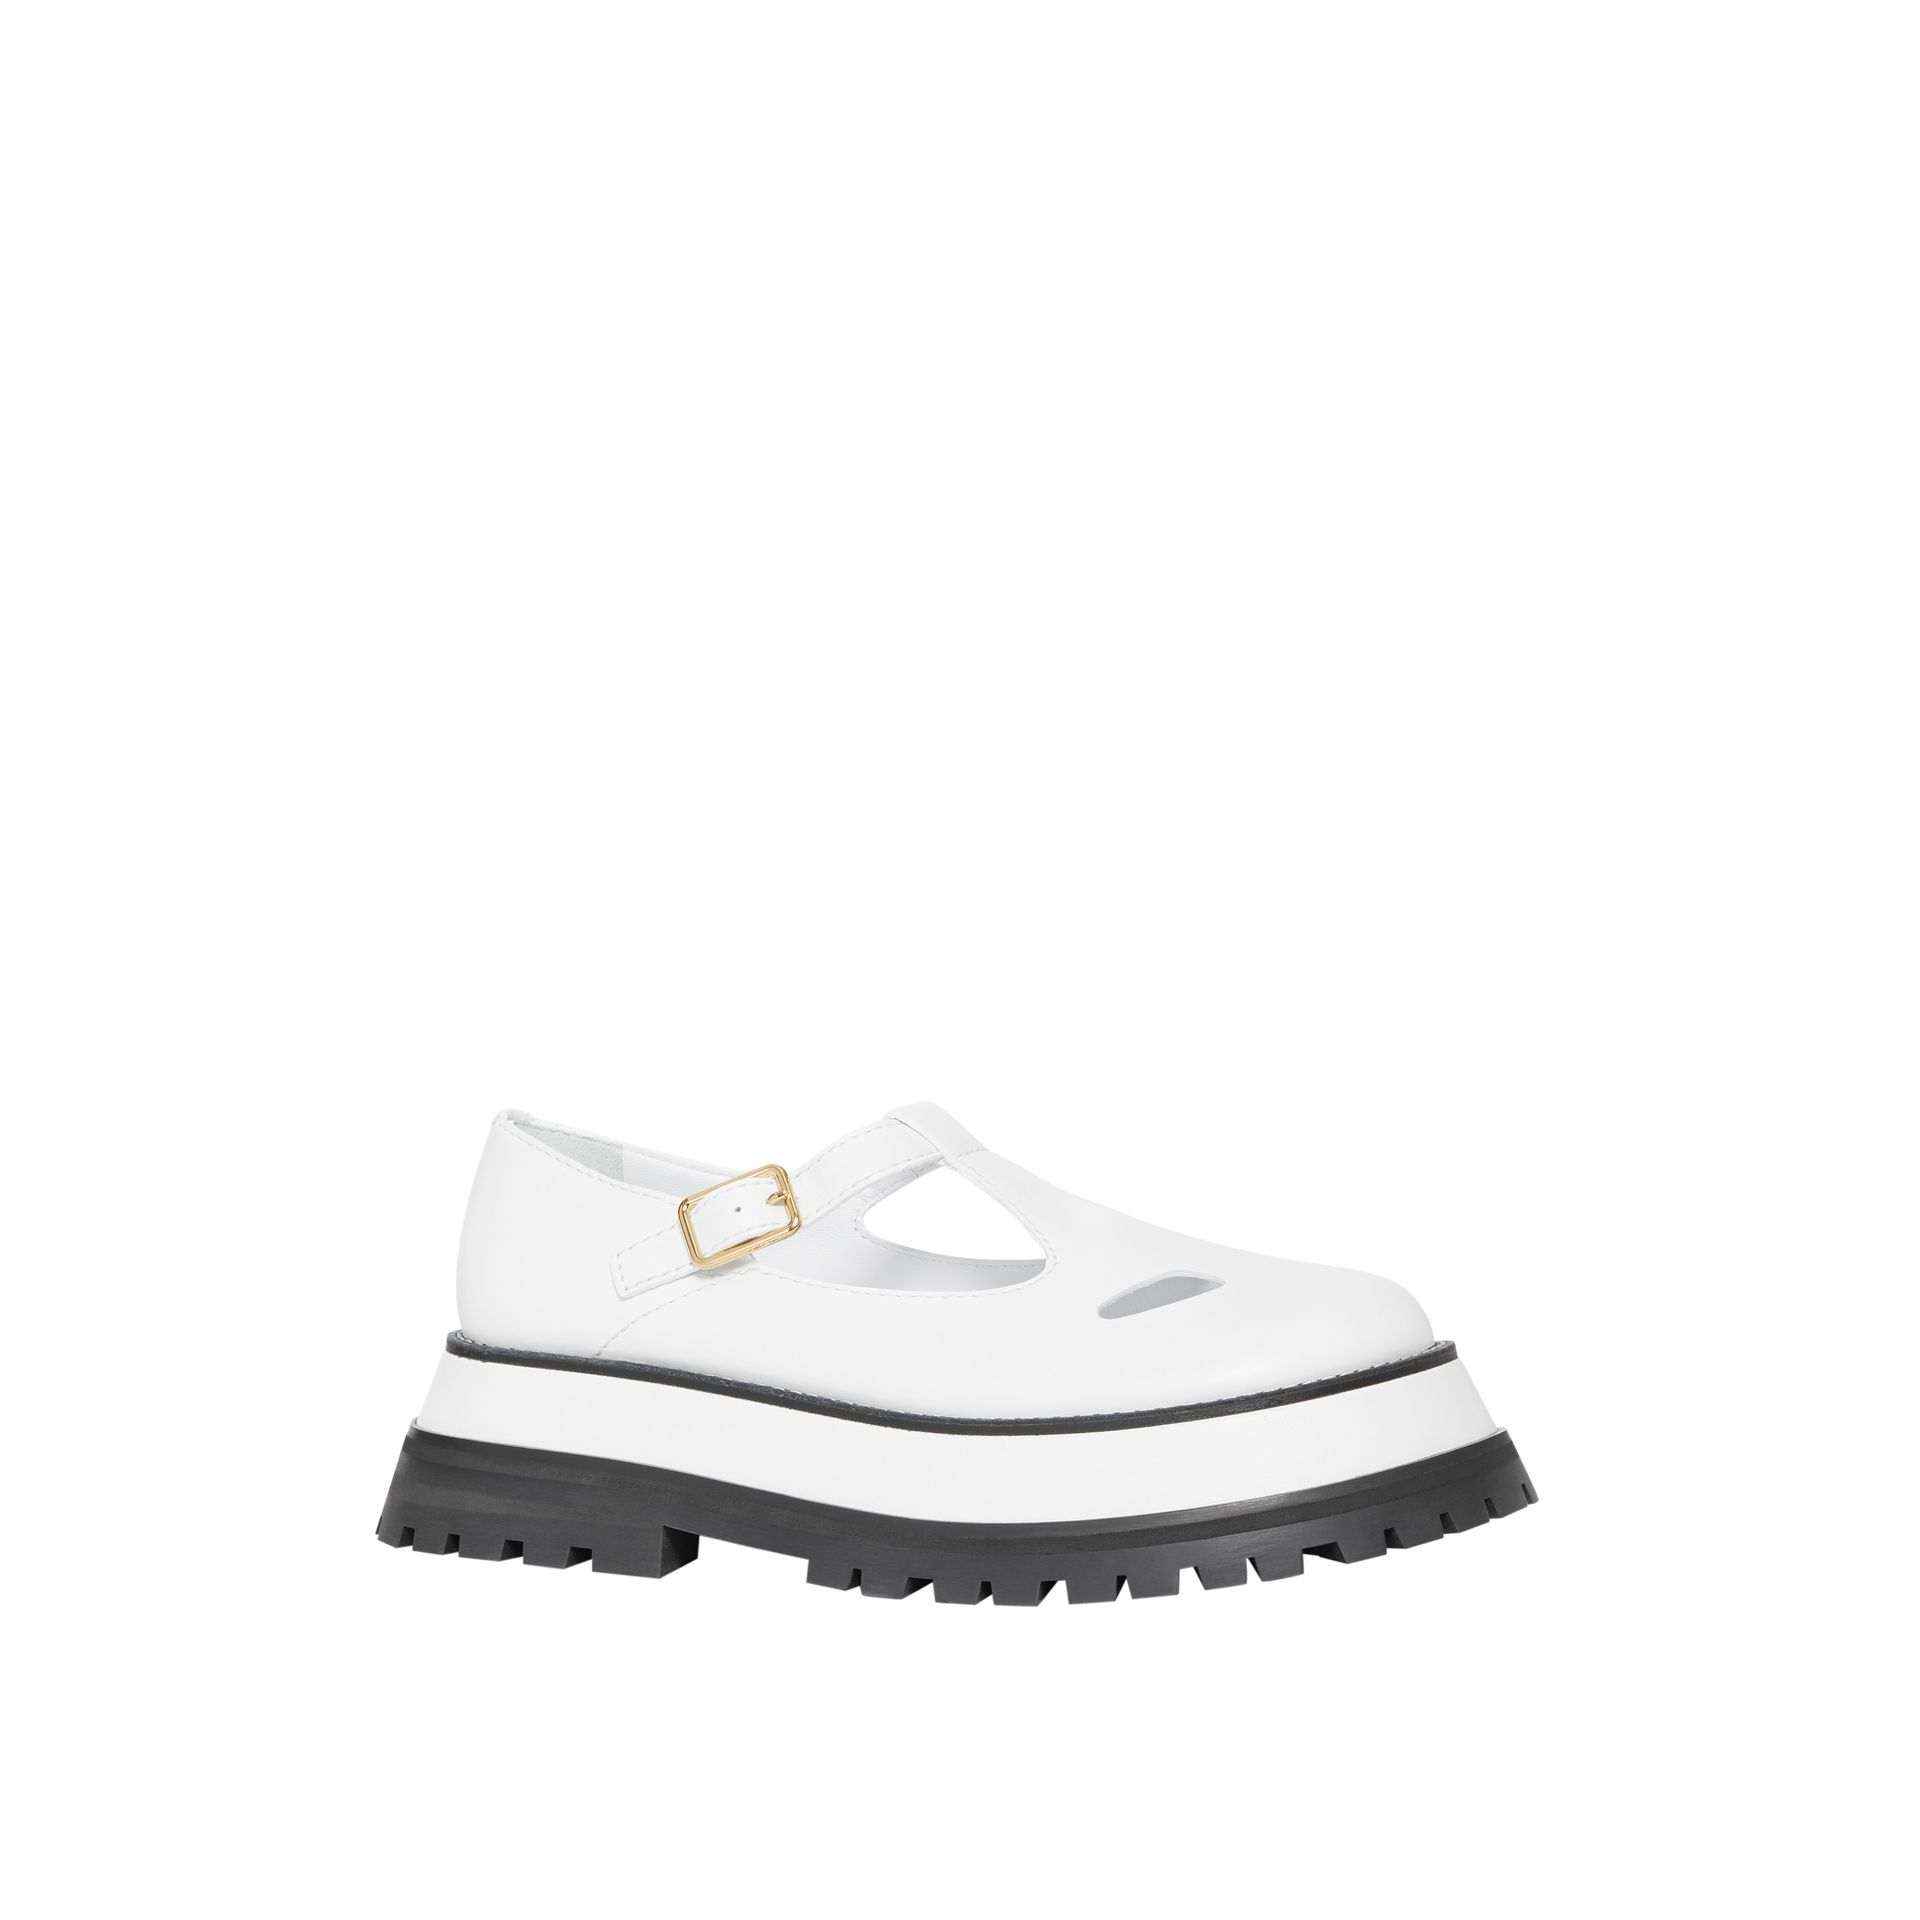 Leather T-bar Shoes in Optic White - Women | Burberry - gallery image 6